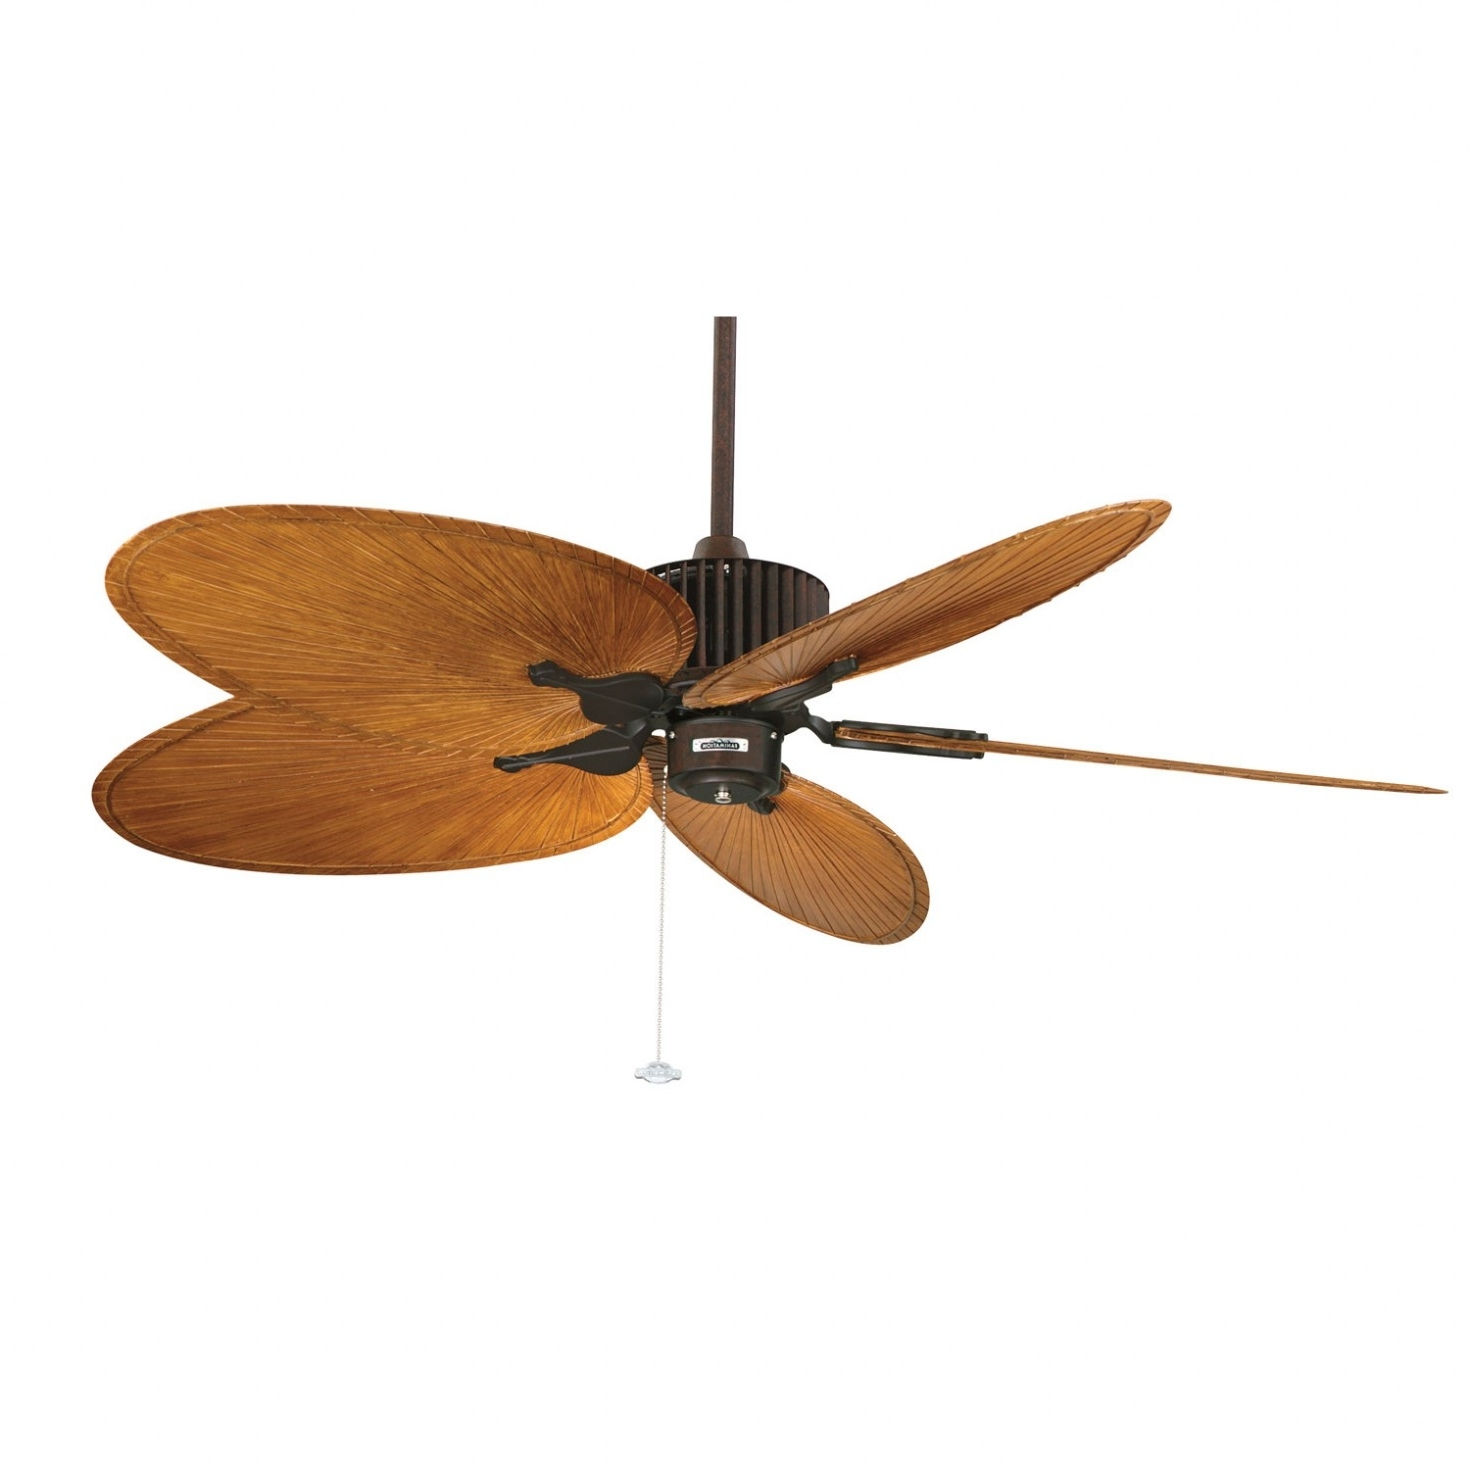 Outdoor Ceiling Fans With Palm Blades Regarding Trendy Palm Leaf Ceiling Fan — Foothillfolk Designs (View 16 of 20)